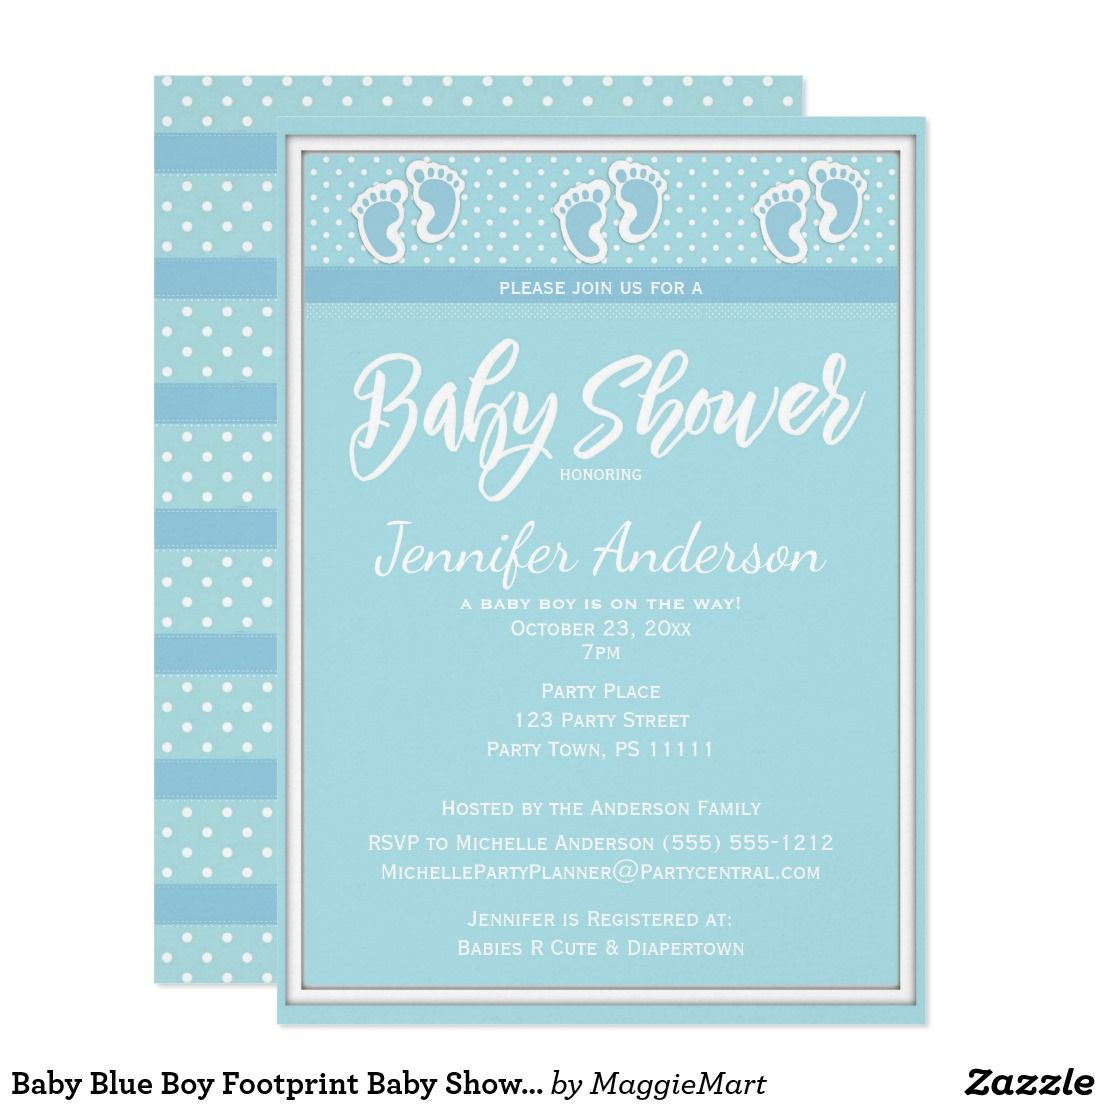 Baby blue boy footprint baby shower card this baby shower invitation baby blue boy footprint baby shower card this baby shower invitation is designed with a baby blue footprint pattern with coordinating polka dots on both the filmwisefo